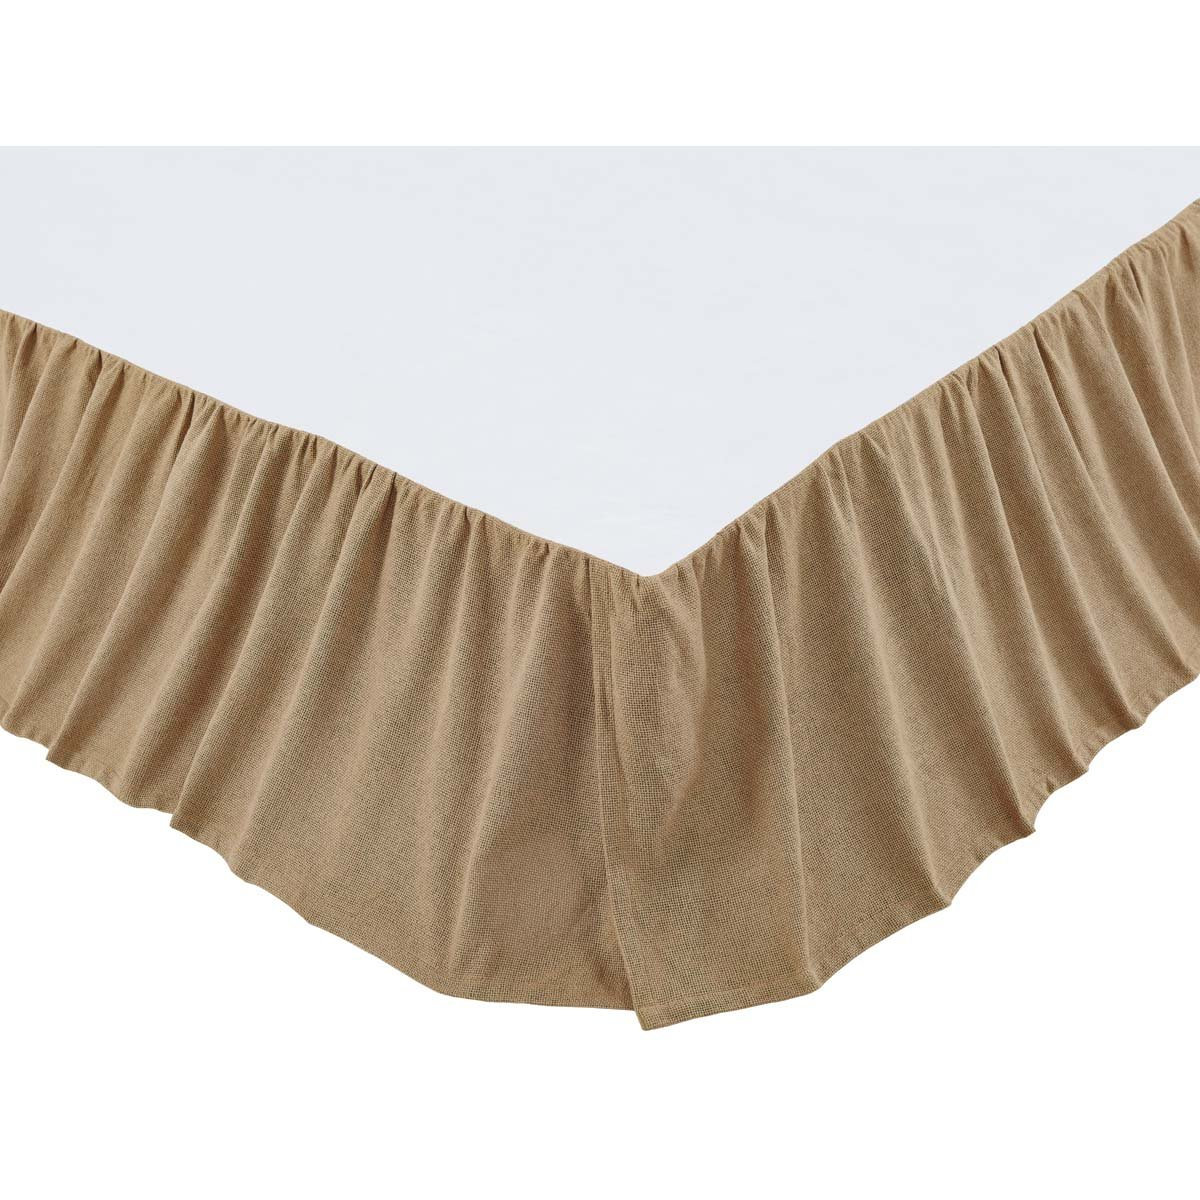 VHC Brands Classic Country Farmhouse Bedding - Burlap Natural Tan Ruffled Bed Skirt, Queen